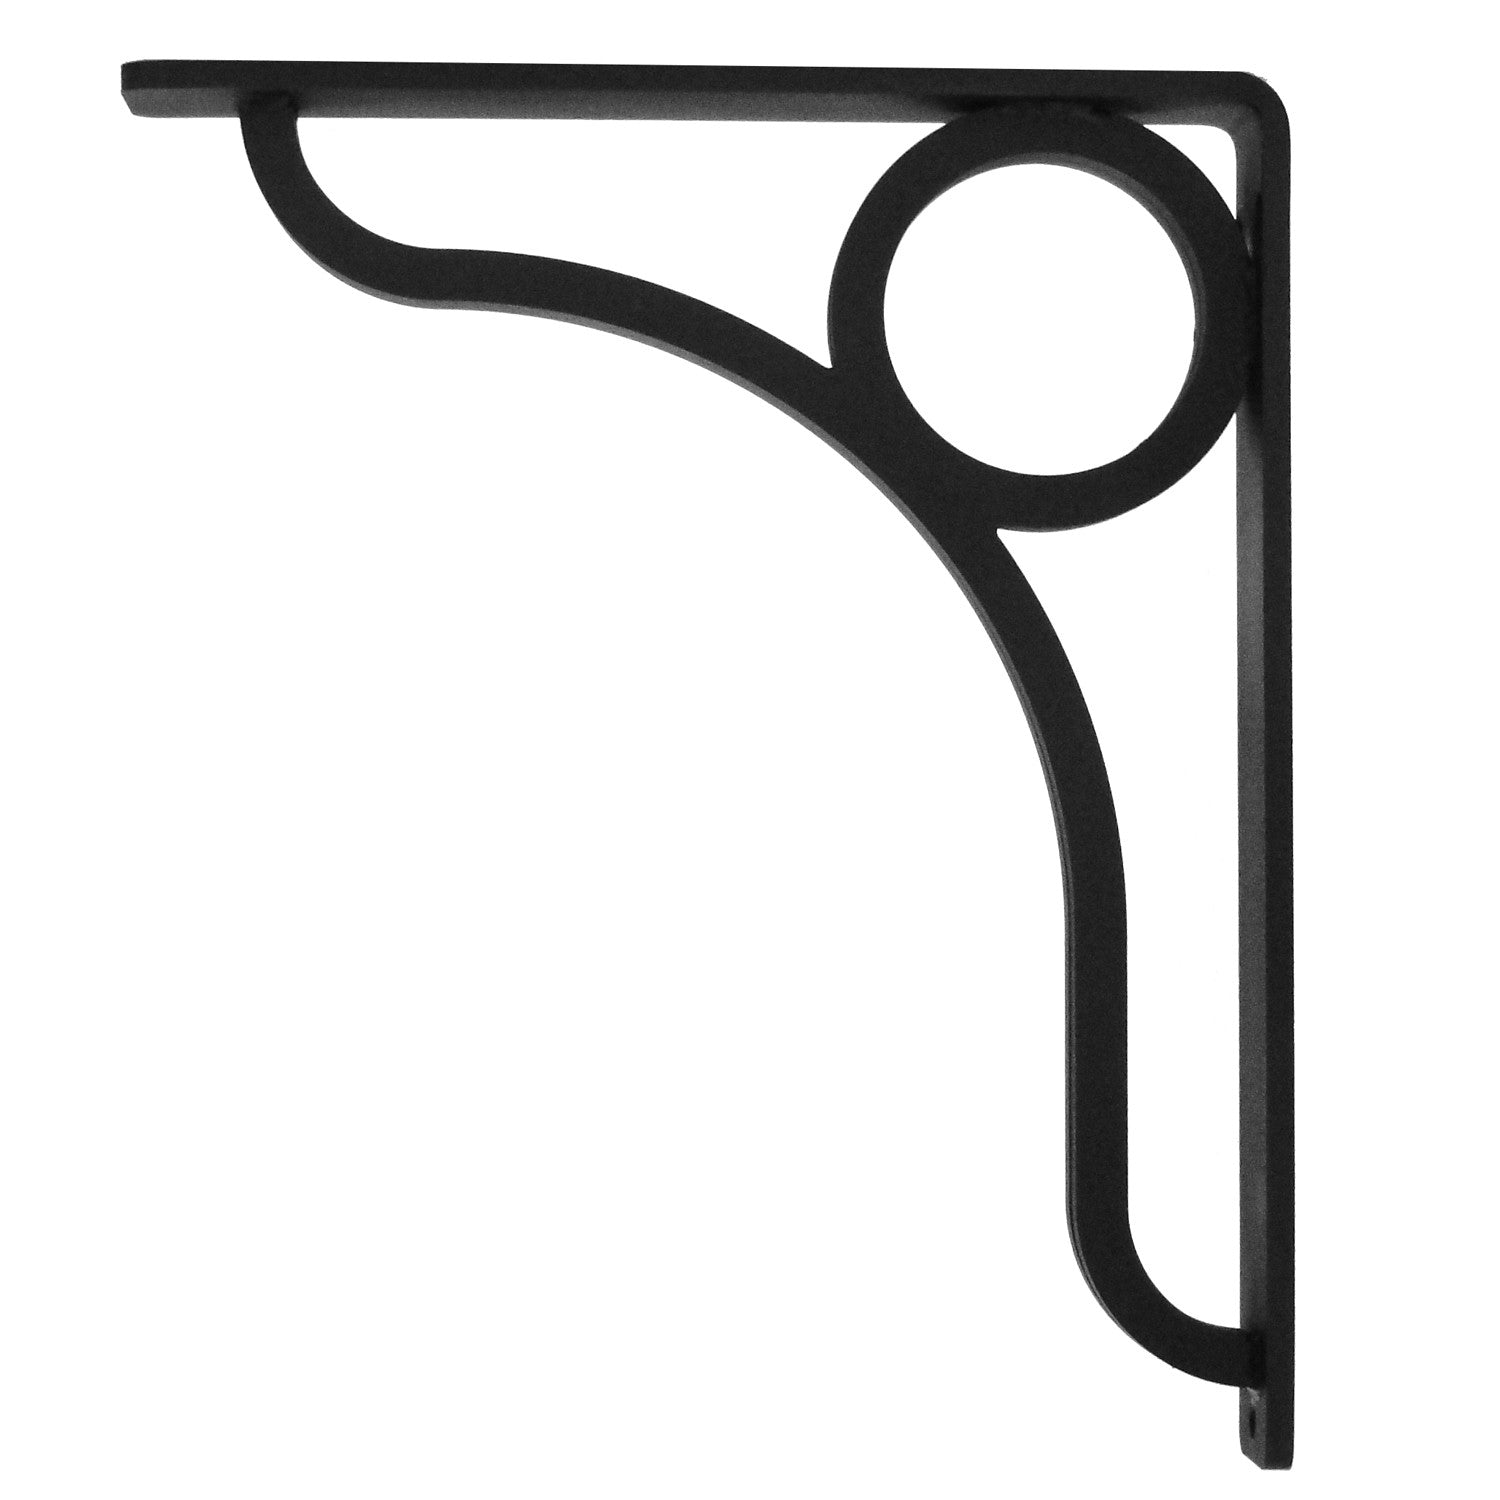 Pictured is the 1.5-inch Wide Lauren Iron Corbel with Black Iron Finish.